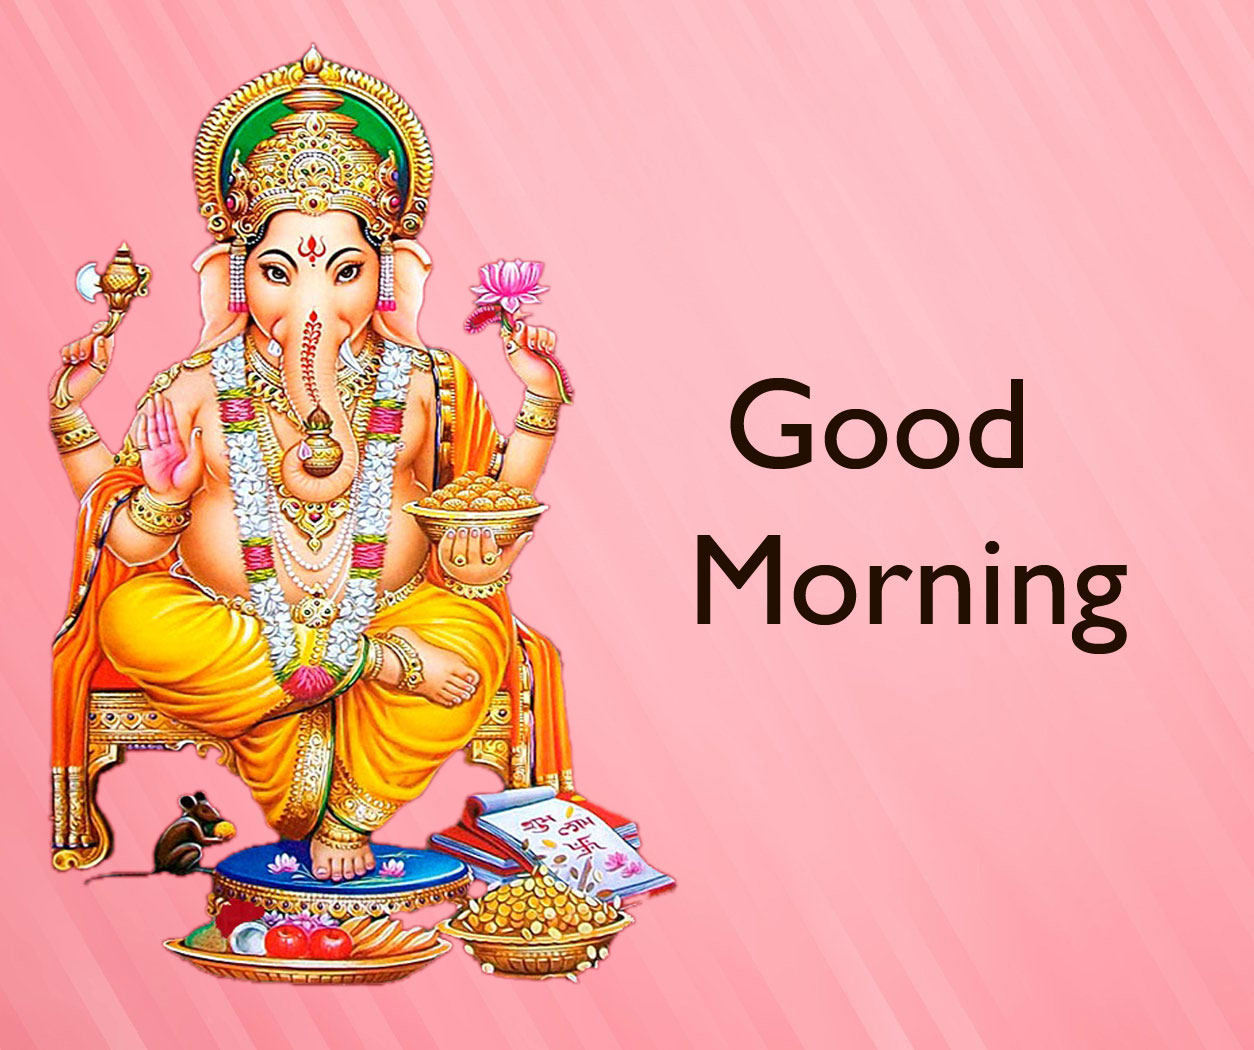 New ganesha good morning images pictures free hd